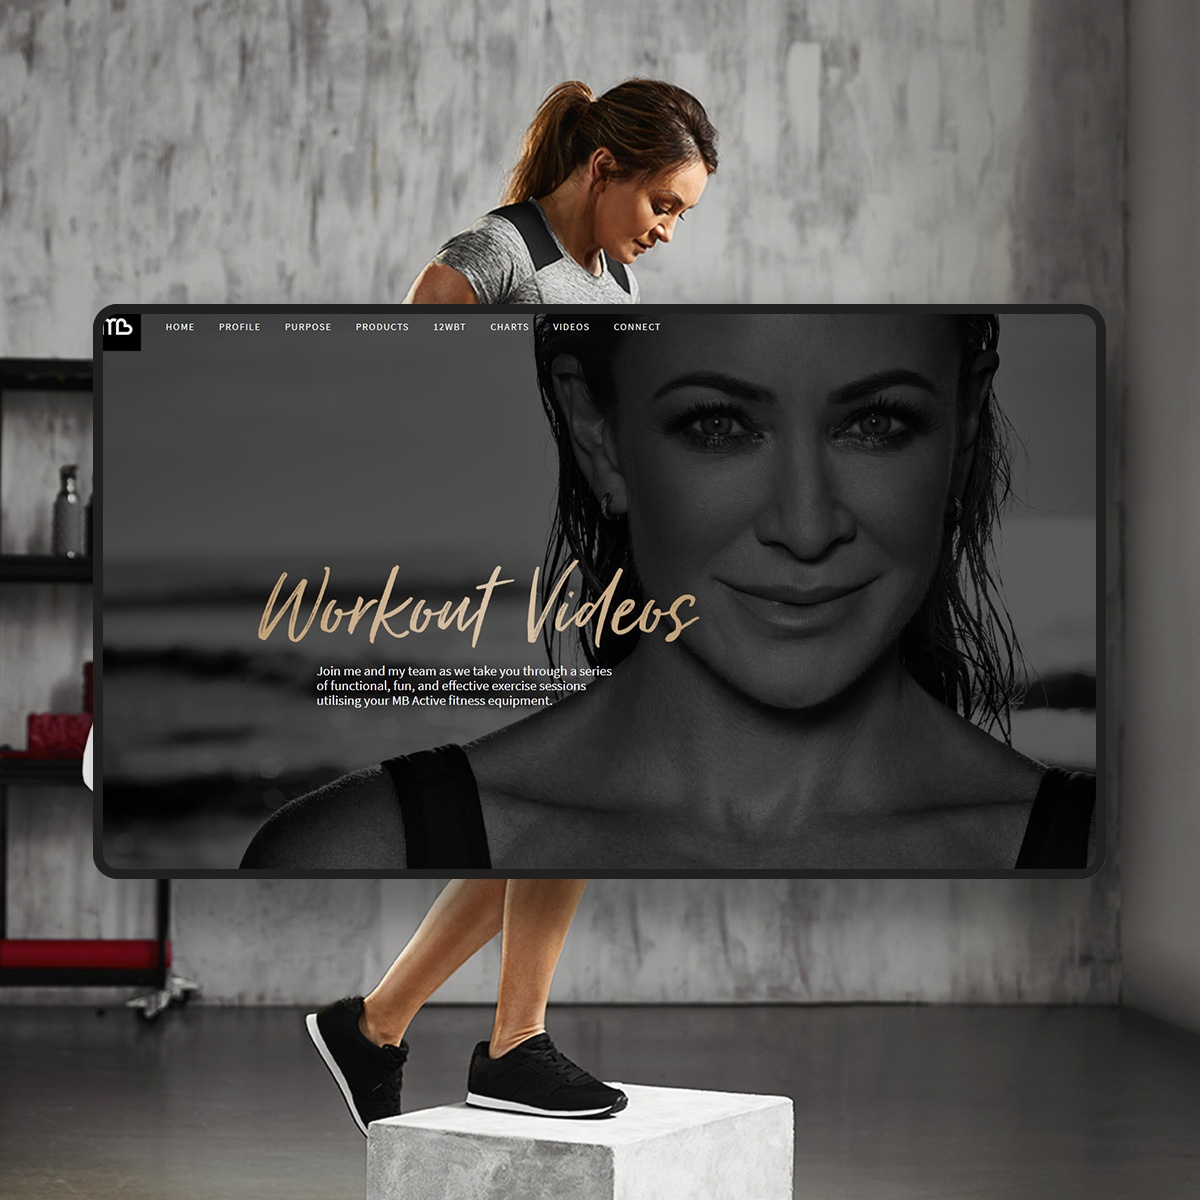 Michelle Bridges mockup 1